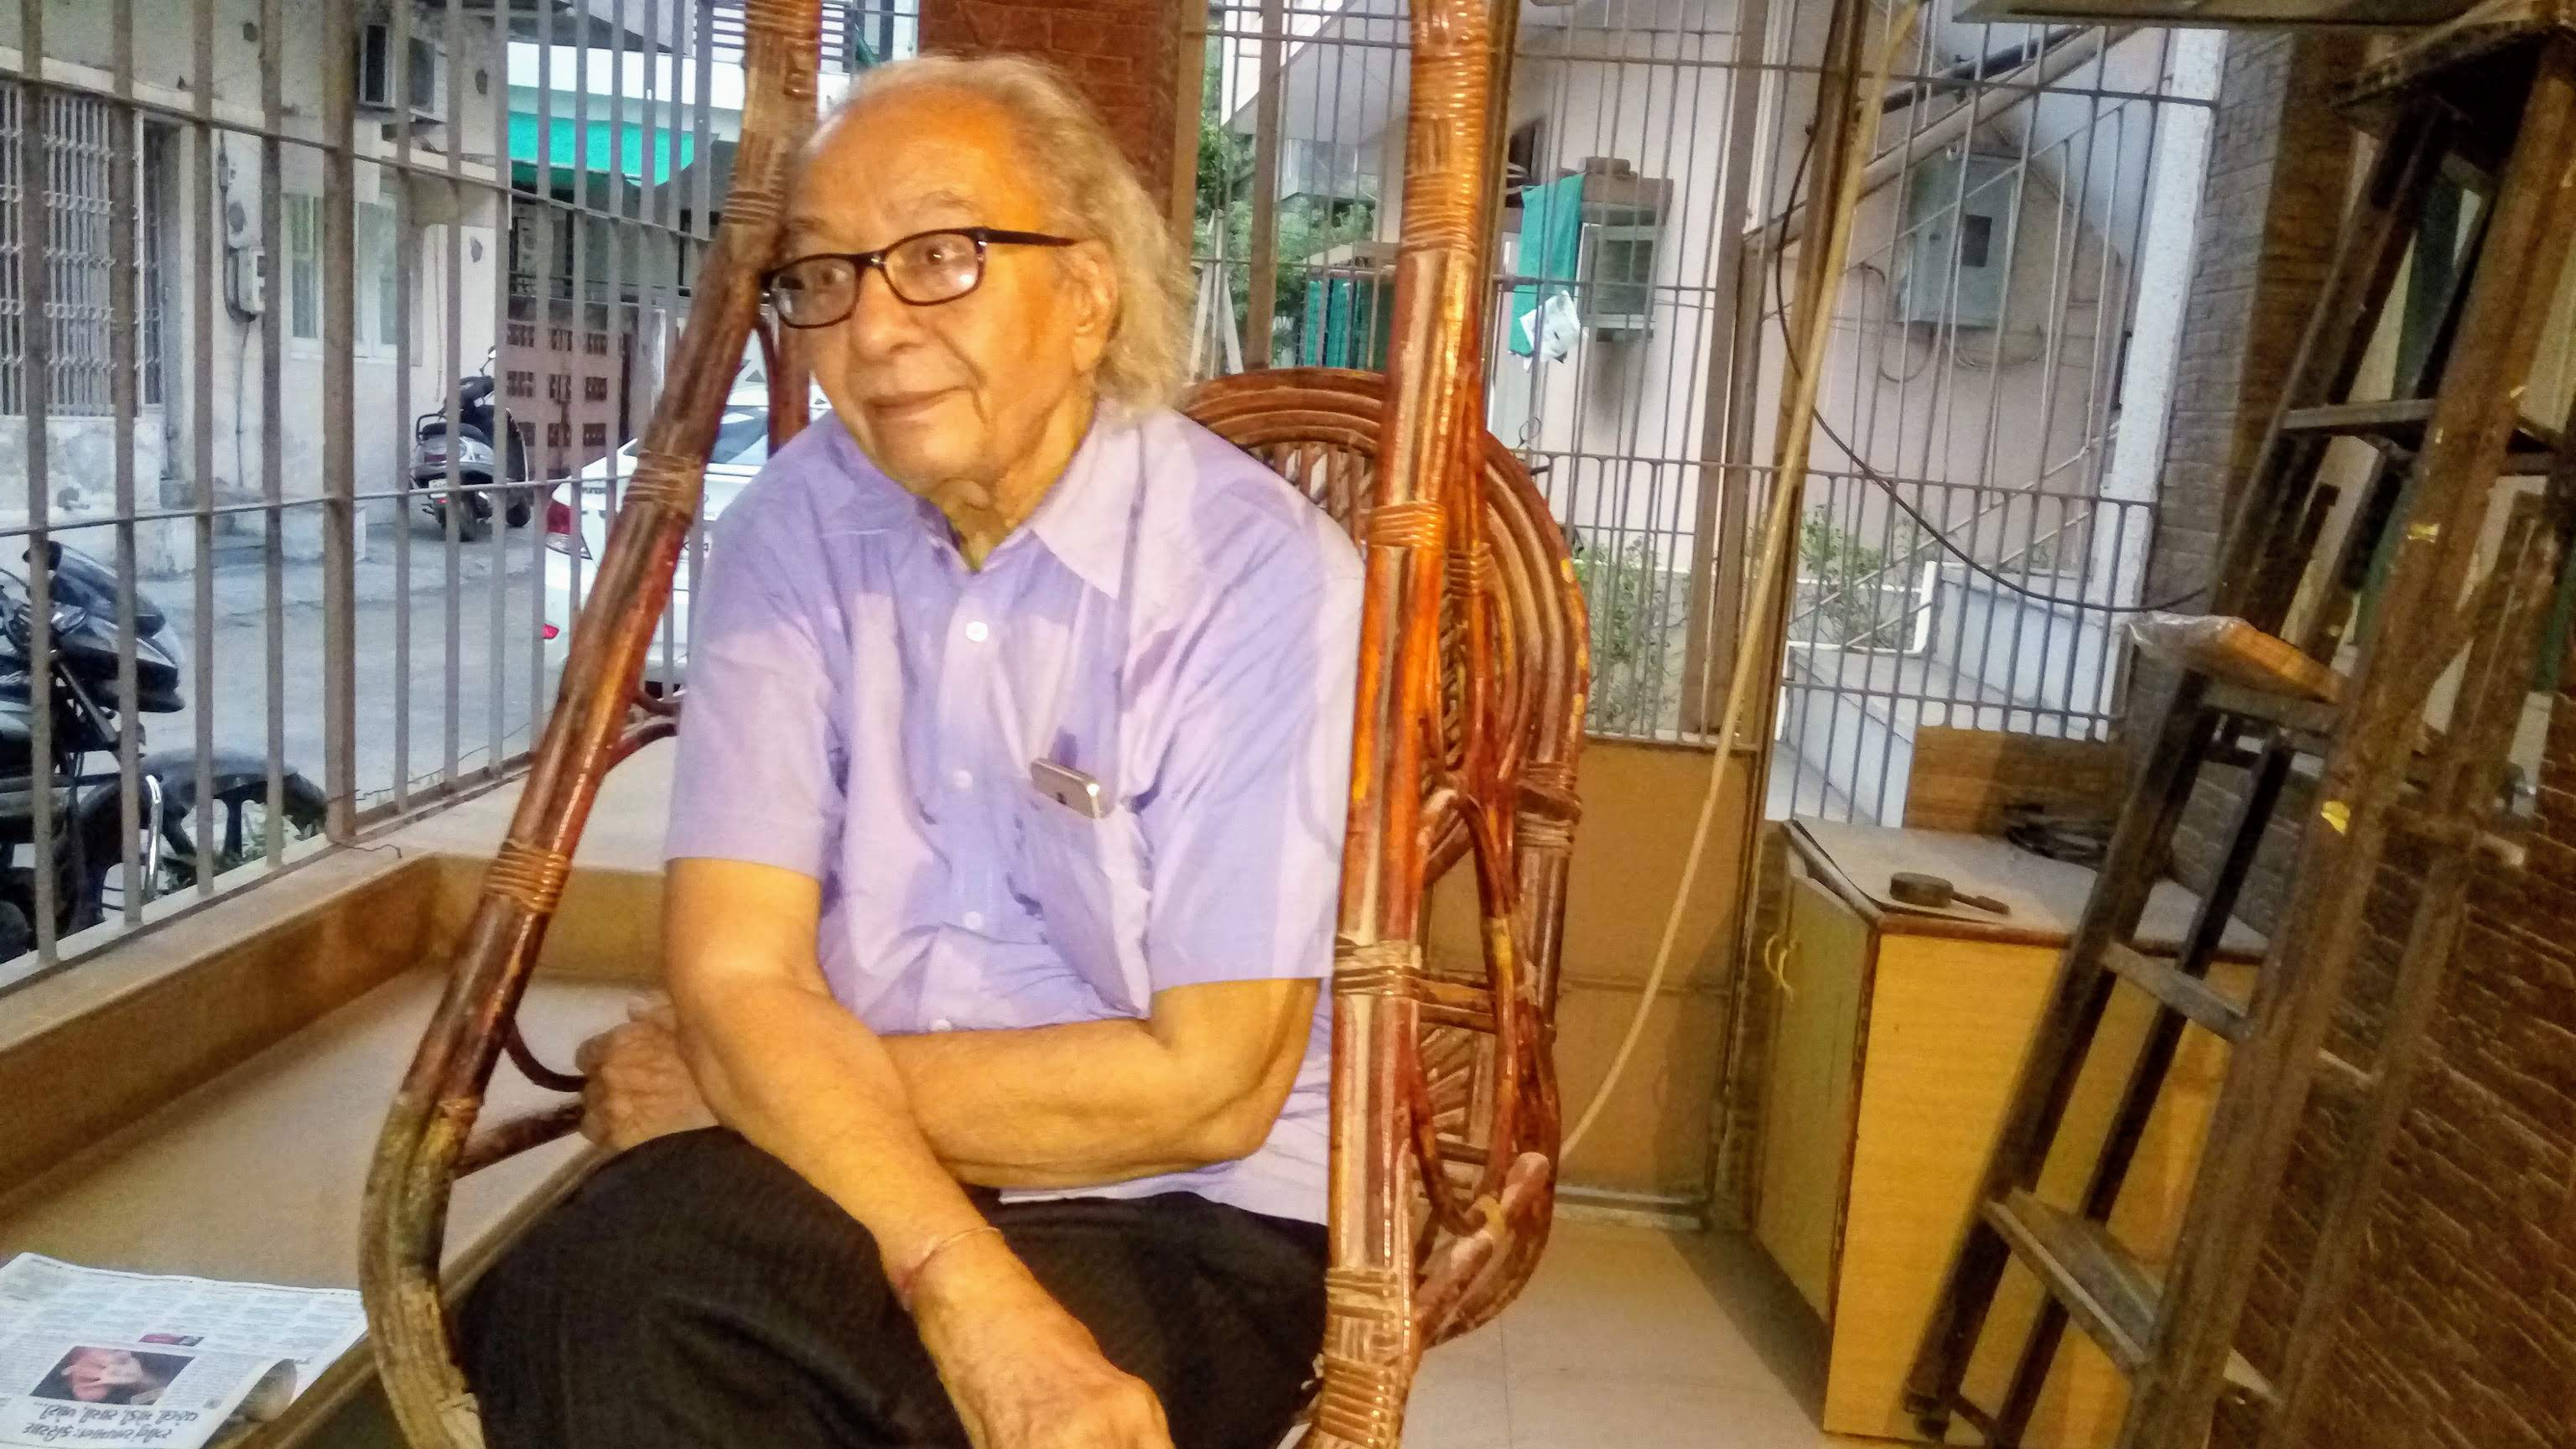 Bhanu Shah donated his 50-year-old rare collection of kites to facilitate the setting up of the museum. Photo courtesy: Mahesh Trivedi